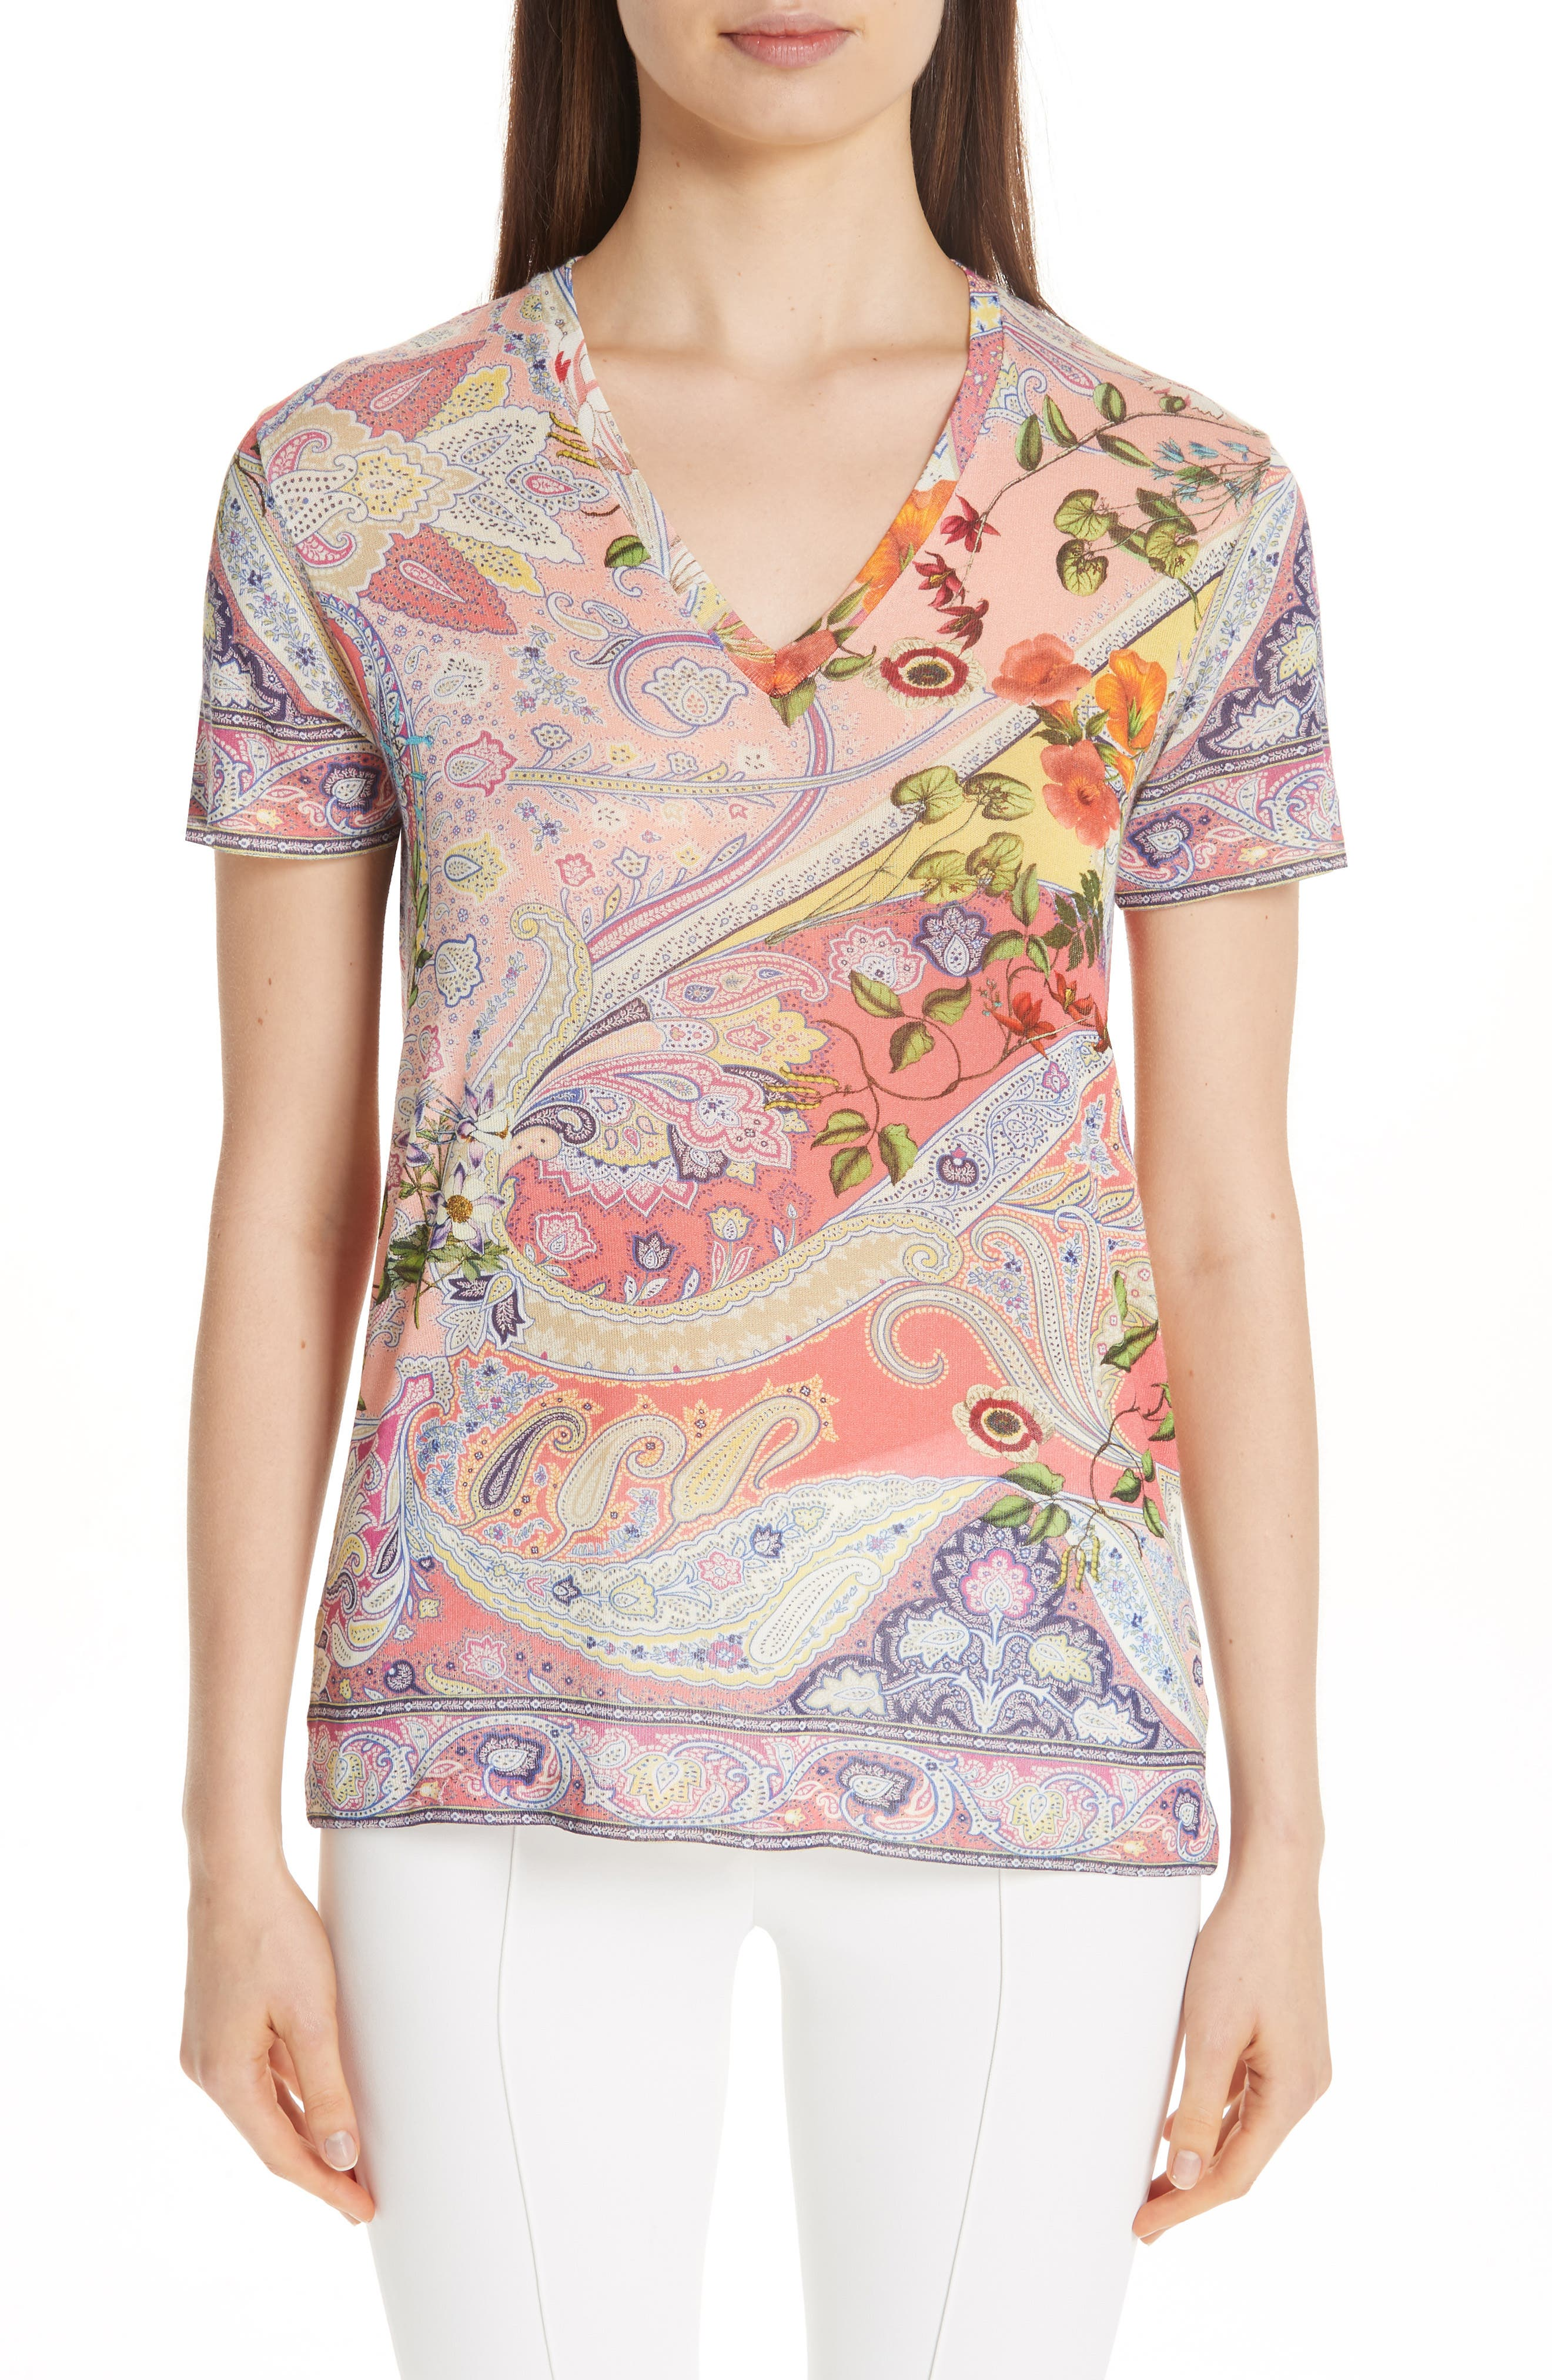 ETRO,                             Paisley Print Stretch Jersey Tee,                             Main thumbnail 1, color,                             RED